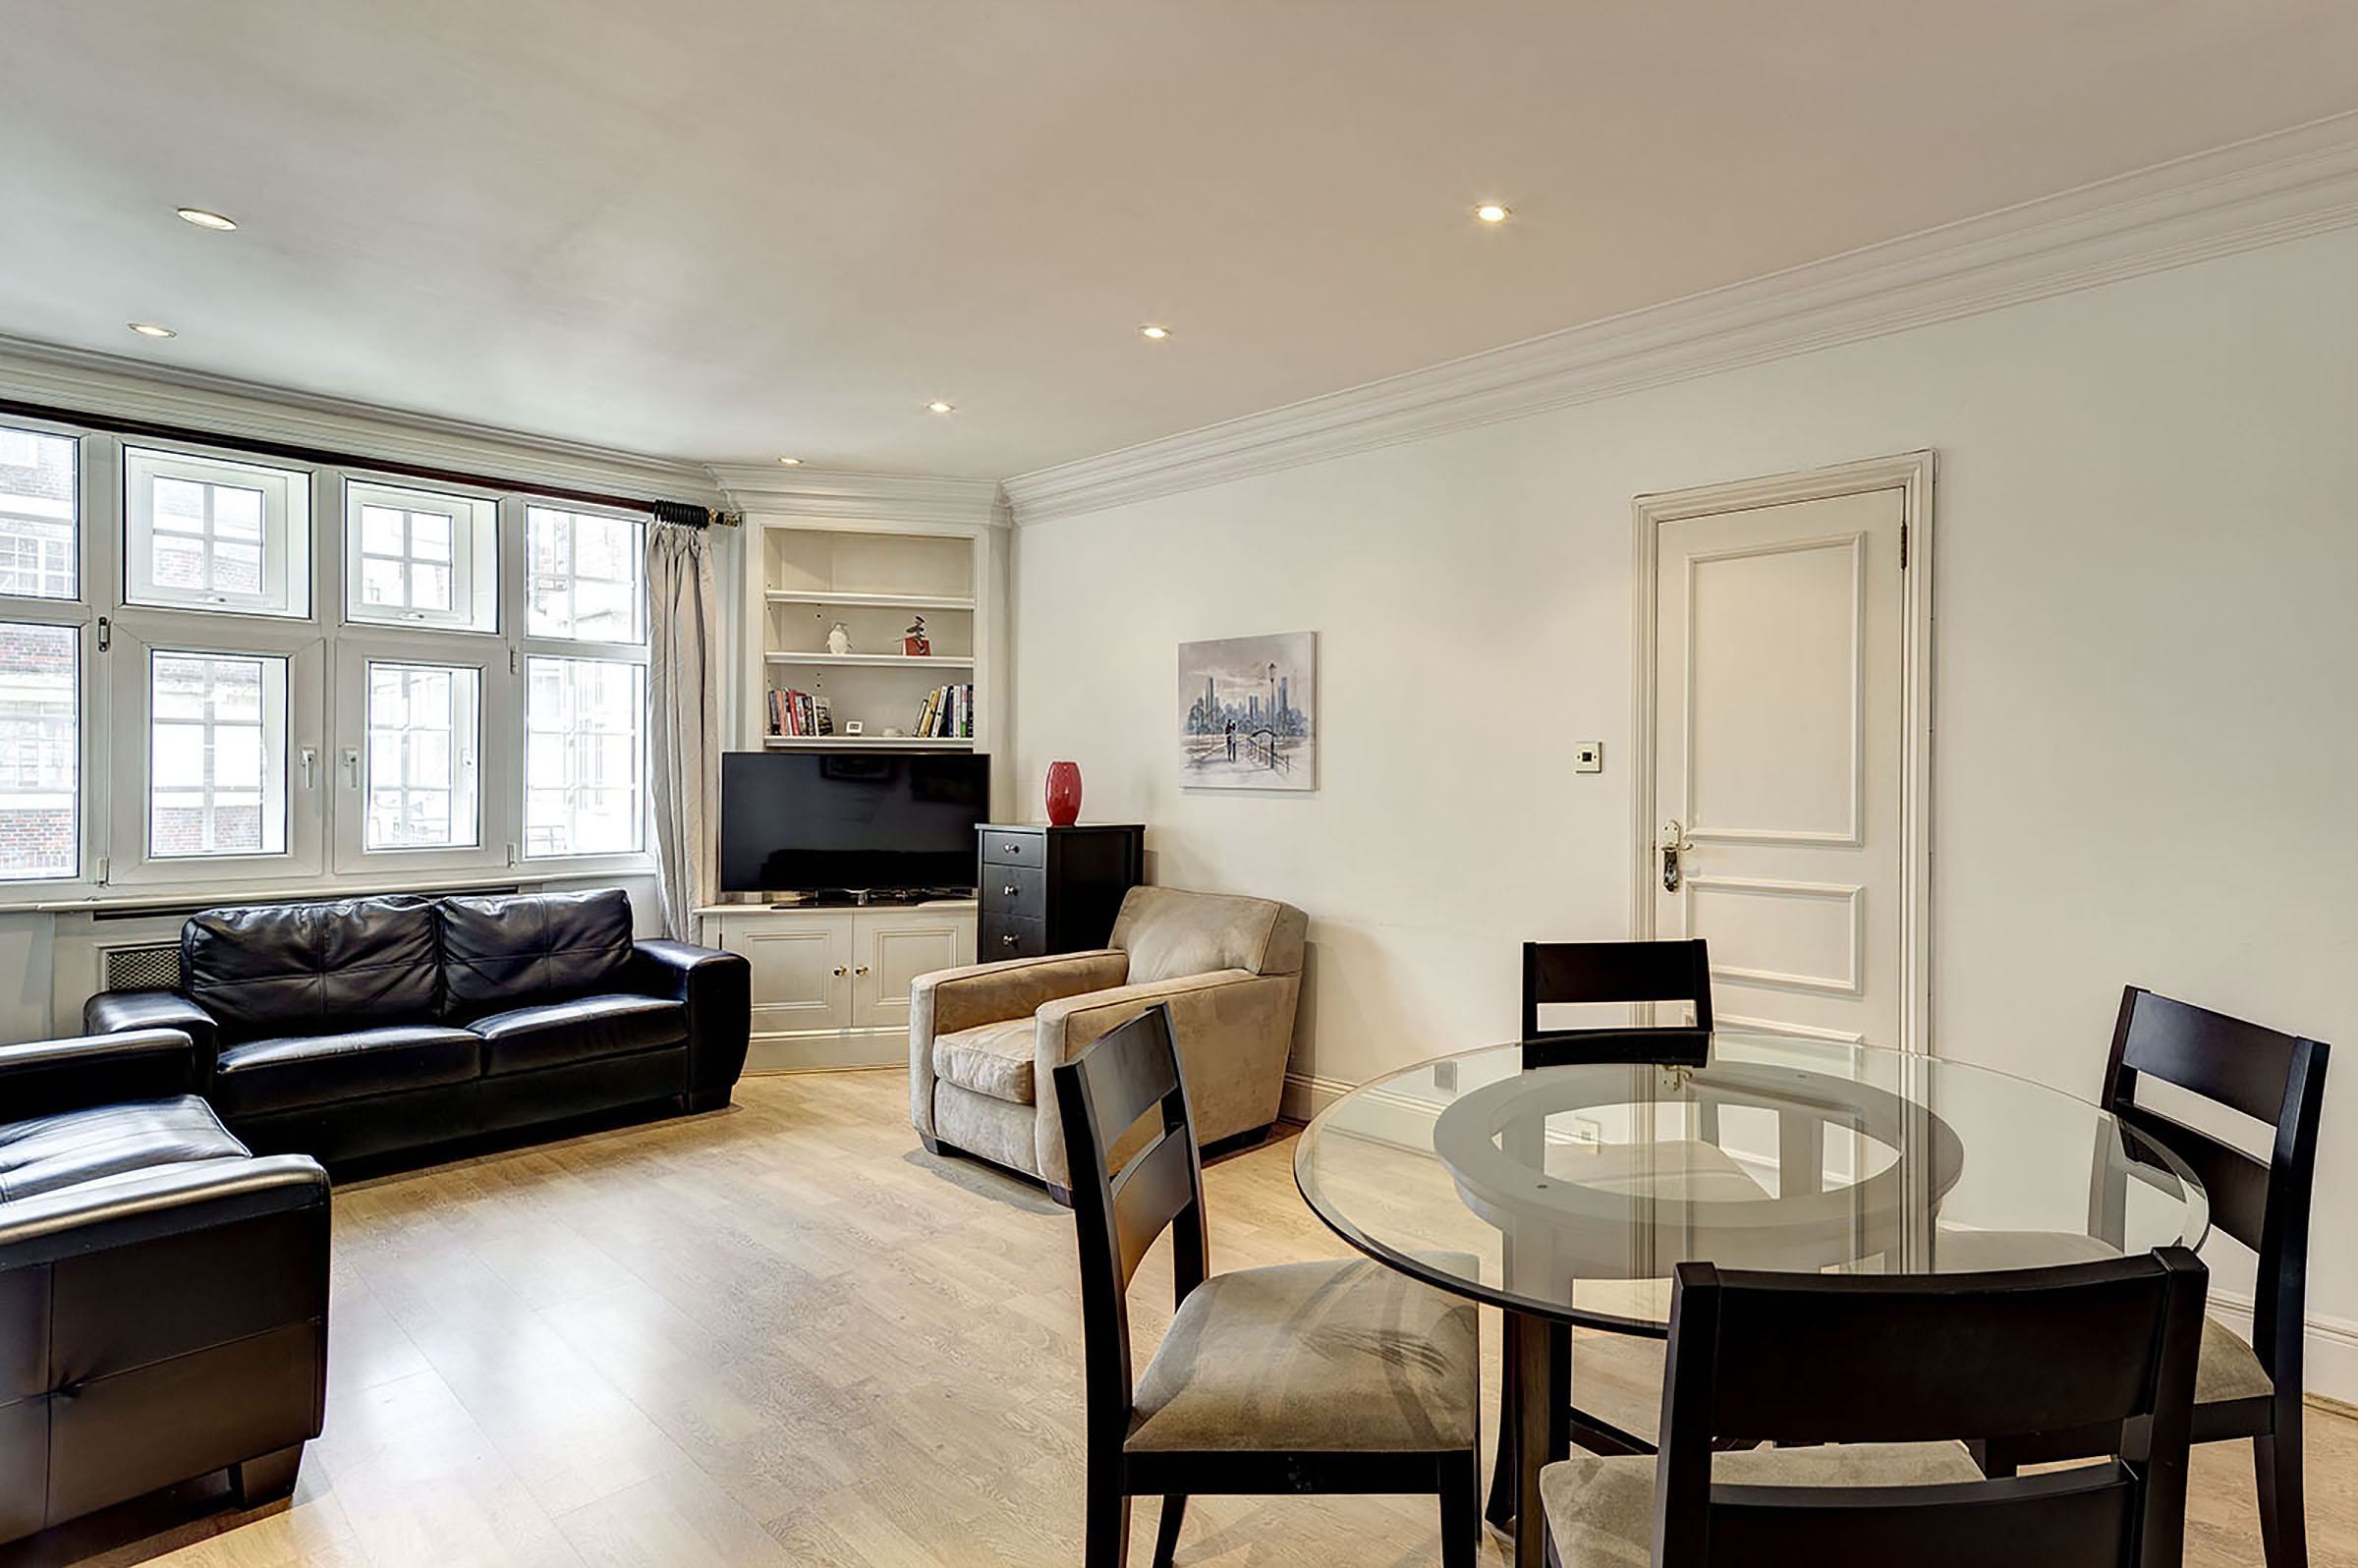 Appartement pour l Vente à Brompton Road London, Angleterre, Royaume-Uni